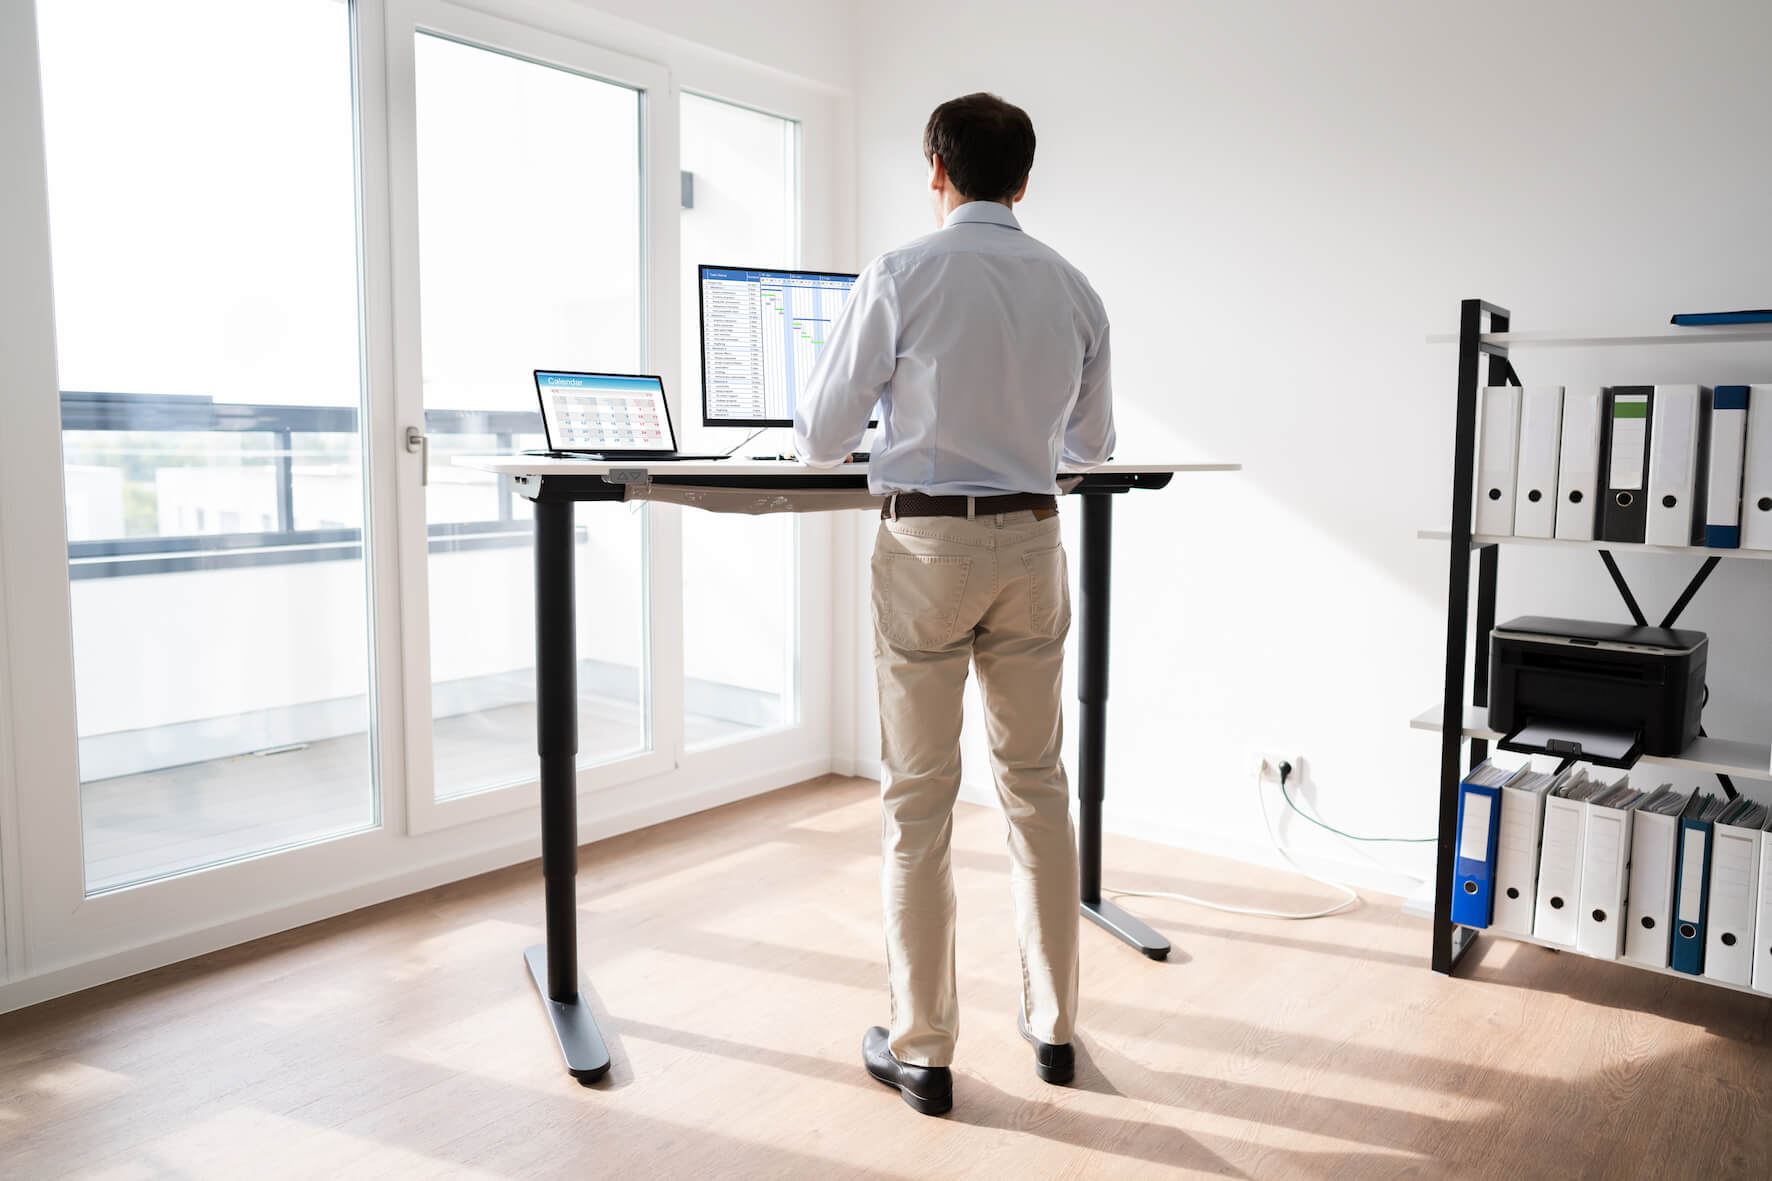 Physiotherapy advice about good posture at work using a standing desk